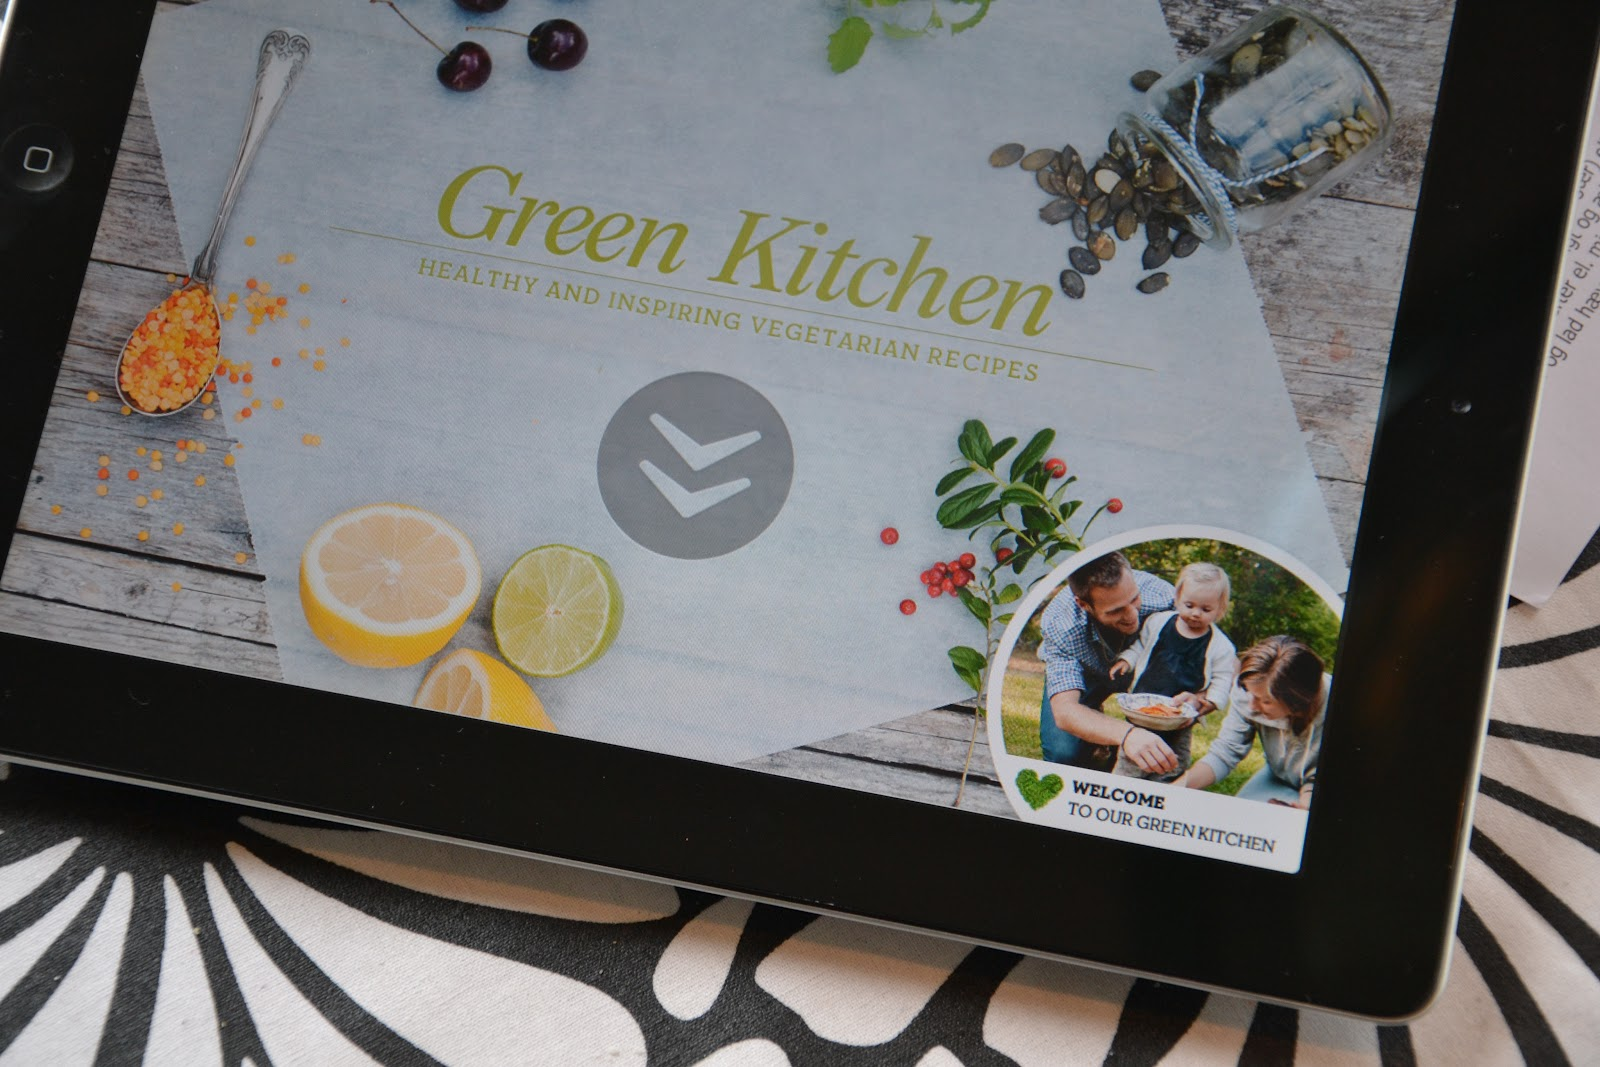 Brændstof: Green Kitchen App